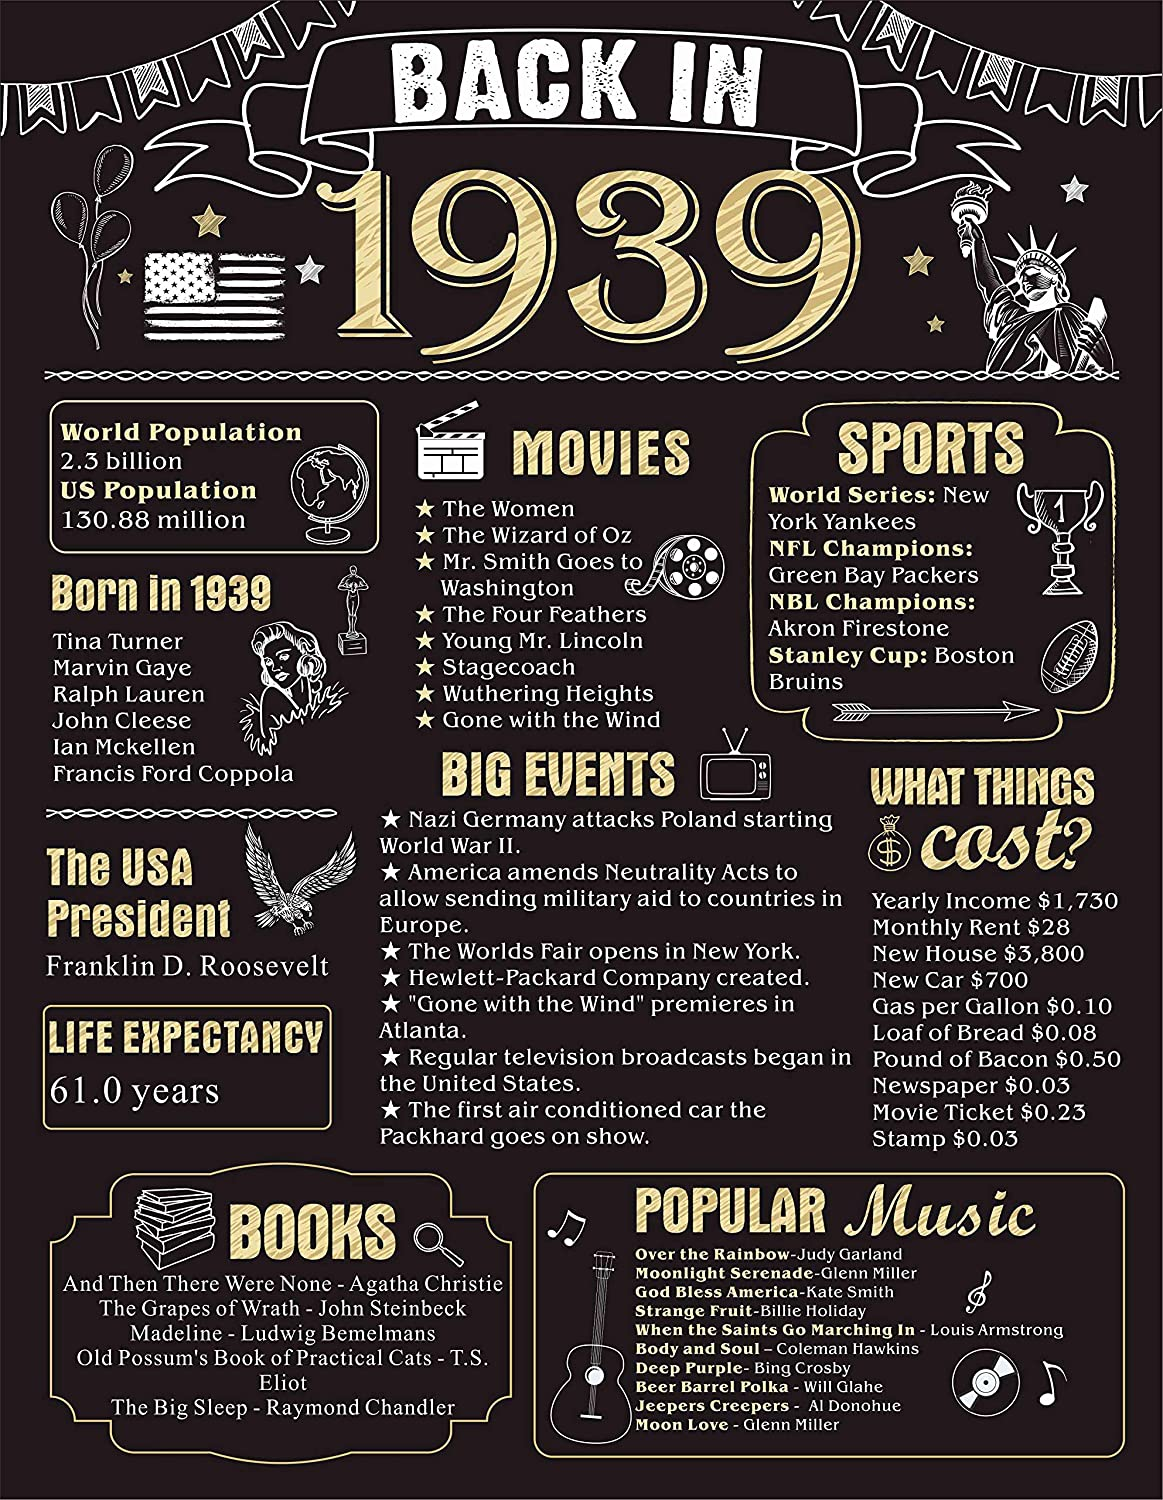 Back in 1929-90 Years 90 Years Ago Birthday or Wedding Anniversary Poster 11 x 14 Party Decorations Supplies Large 90th Party Sign Home Decor for Men and Women